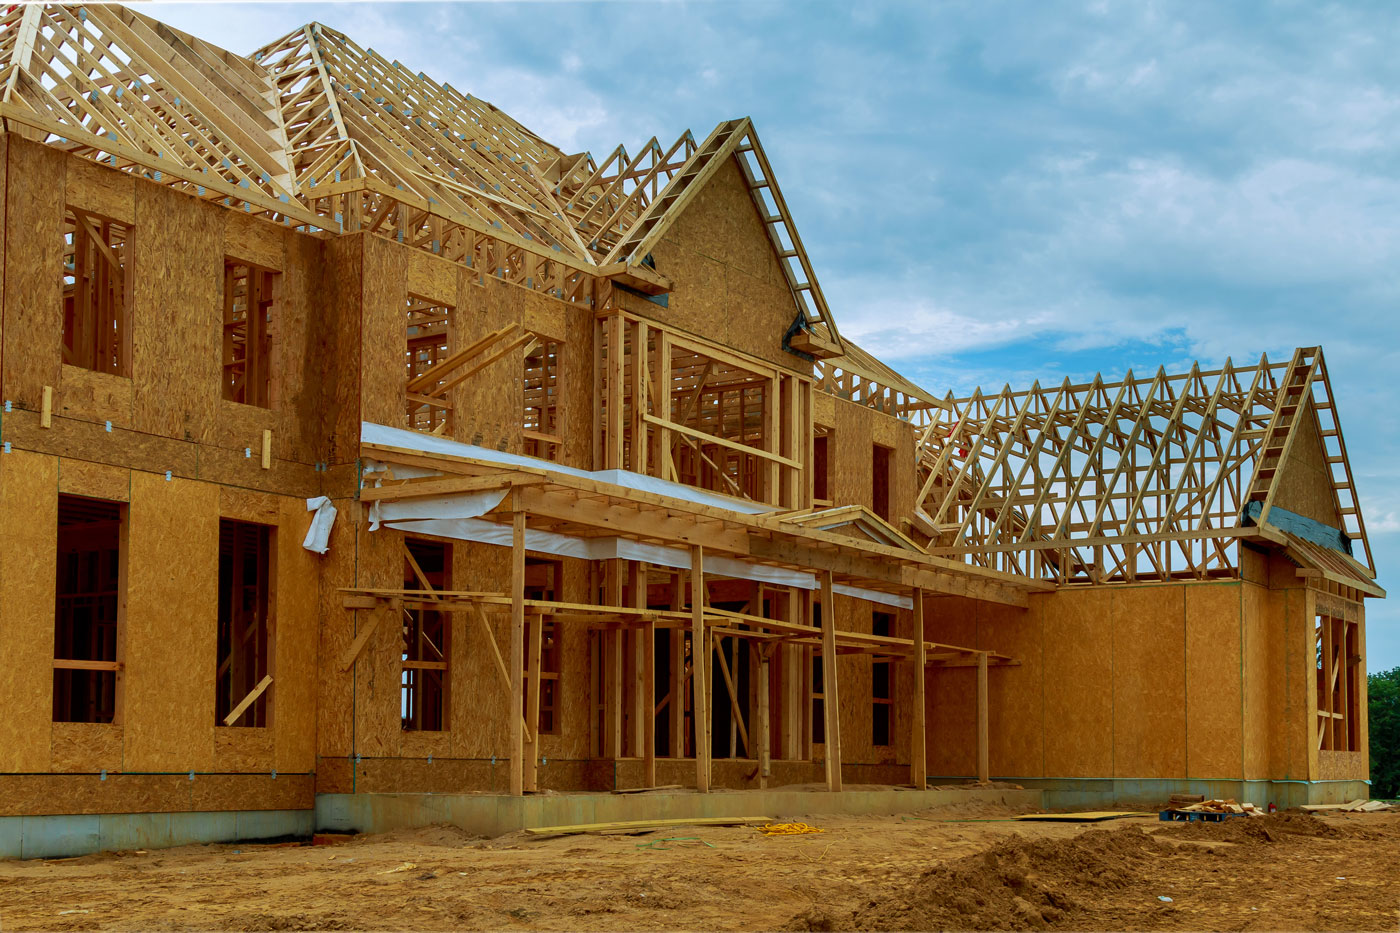 New Home Construction - Twin Cities Metro